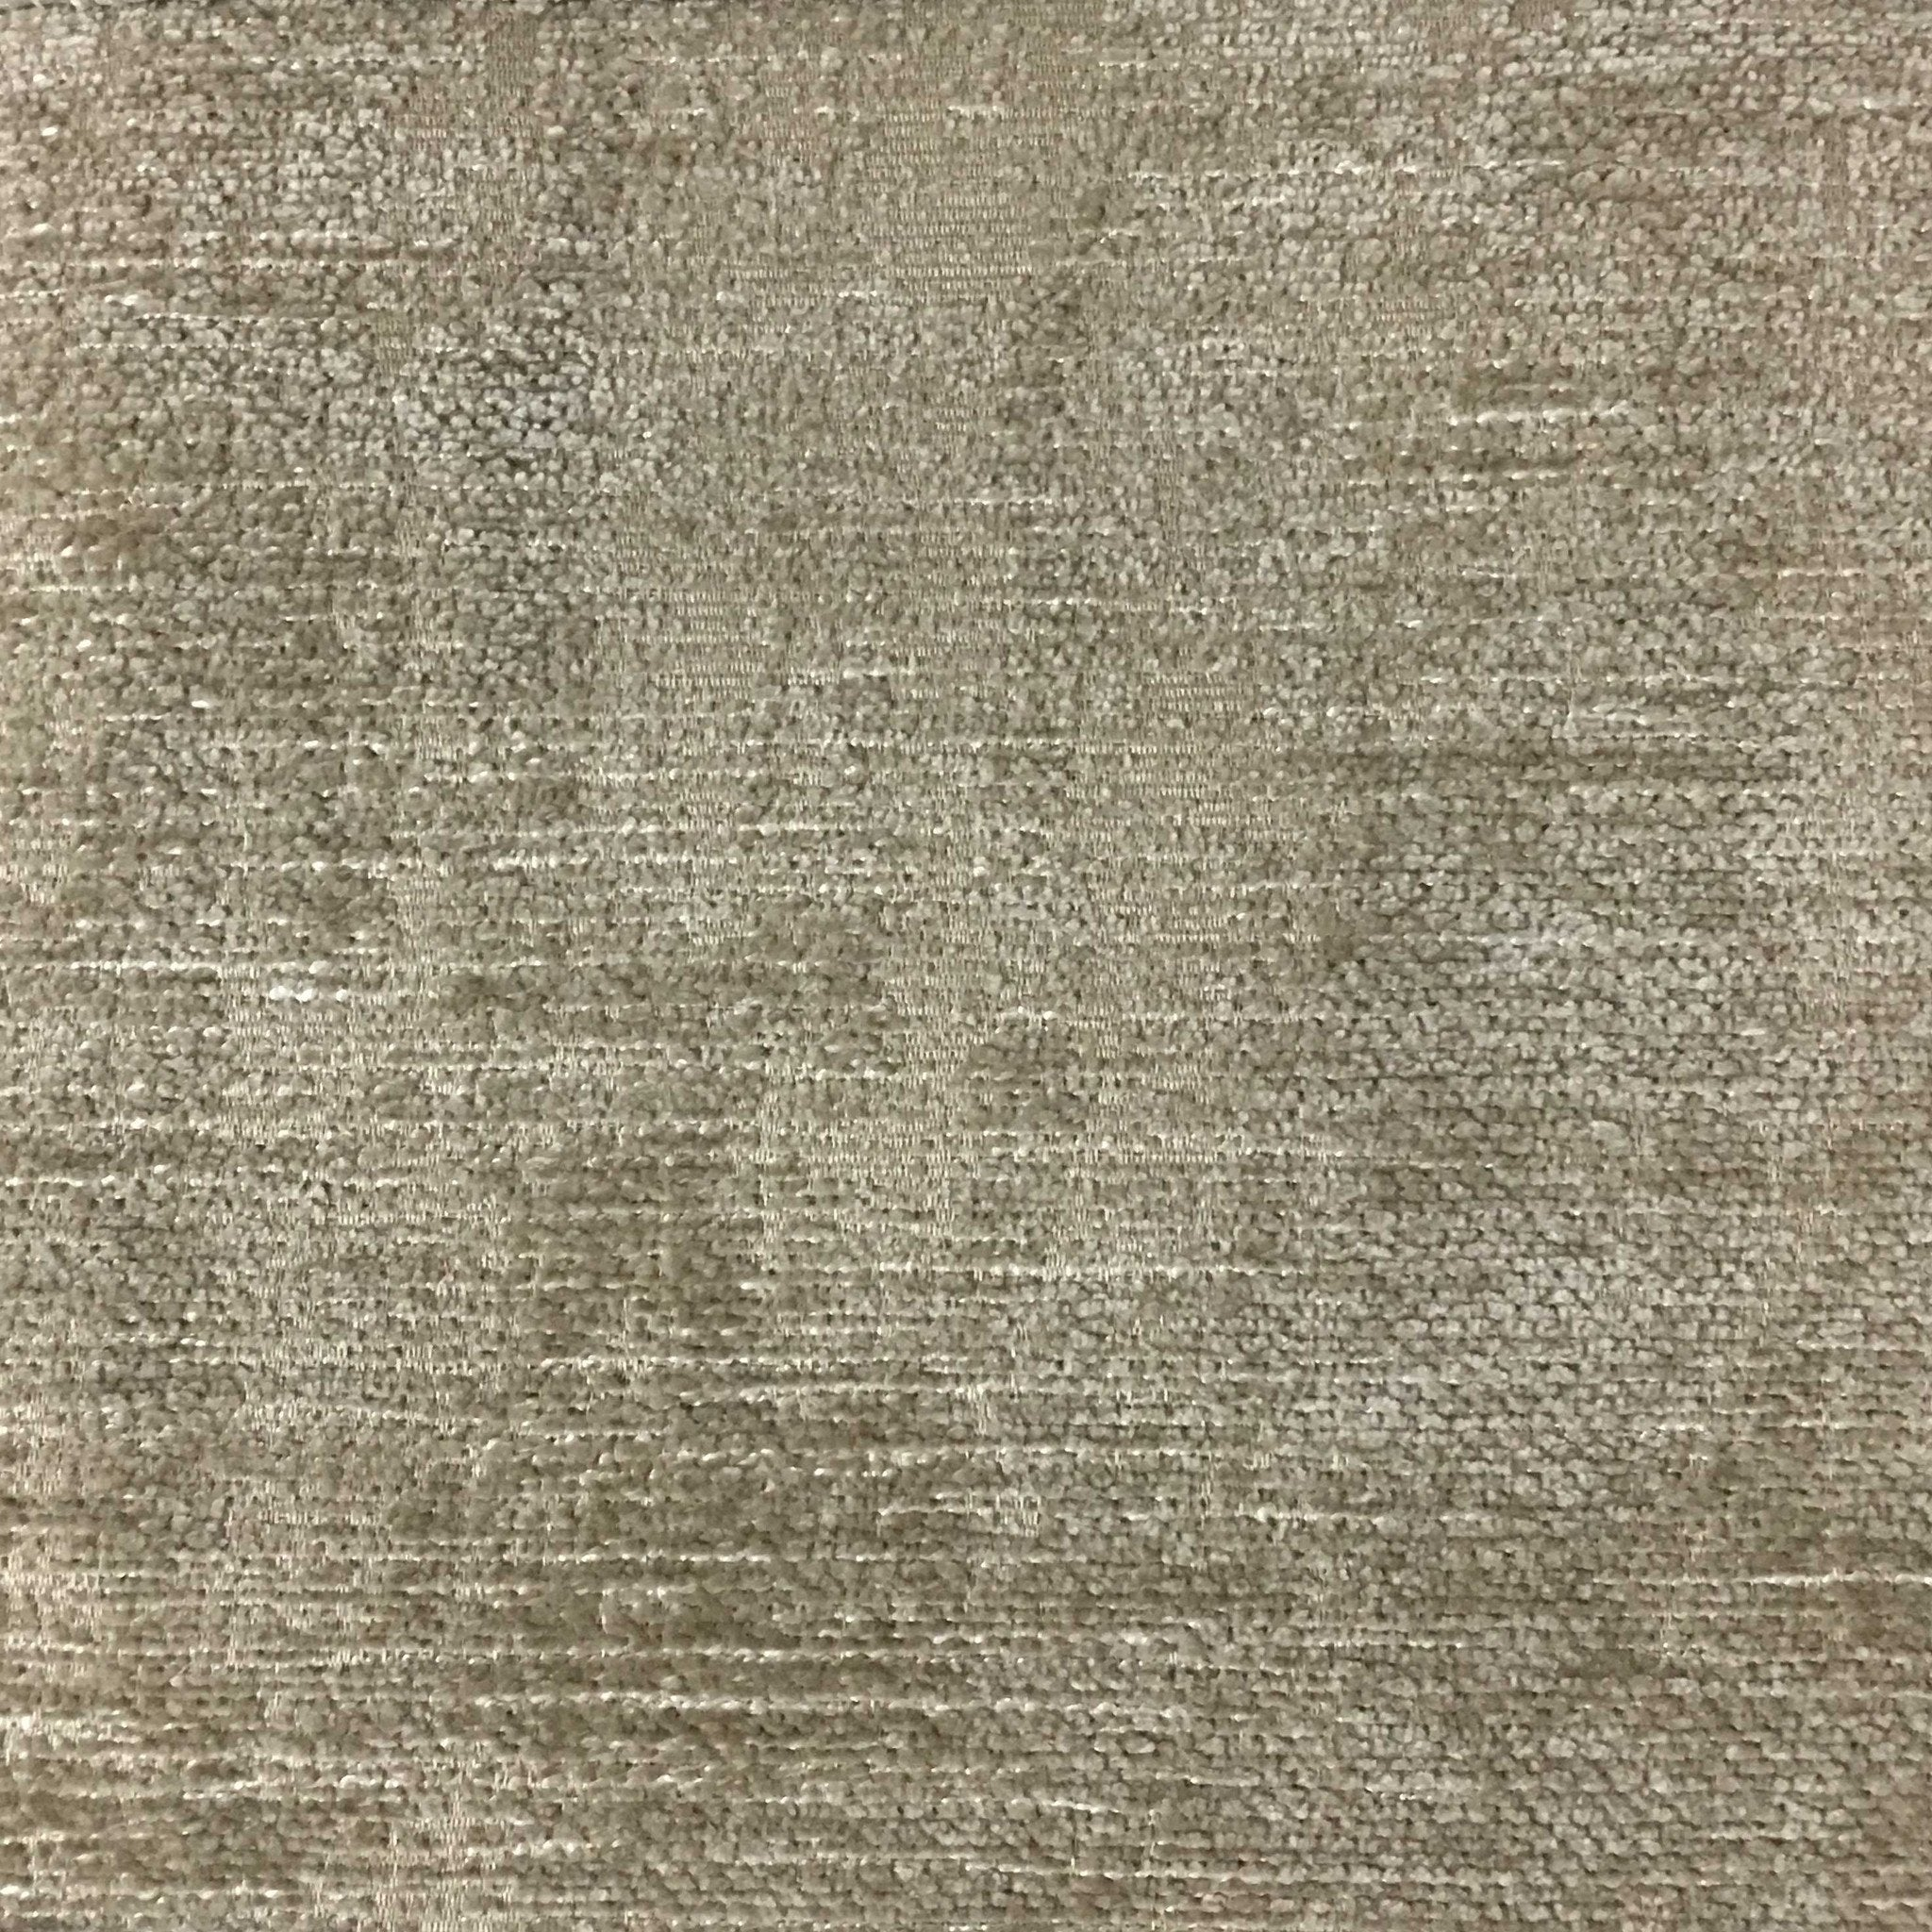 Saunders modern chenille upholstery fabric by the yard for Home decorators chenille rug